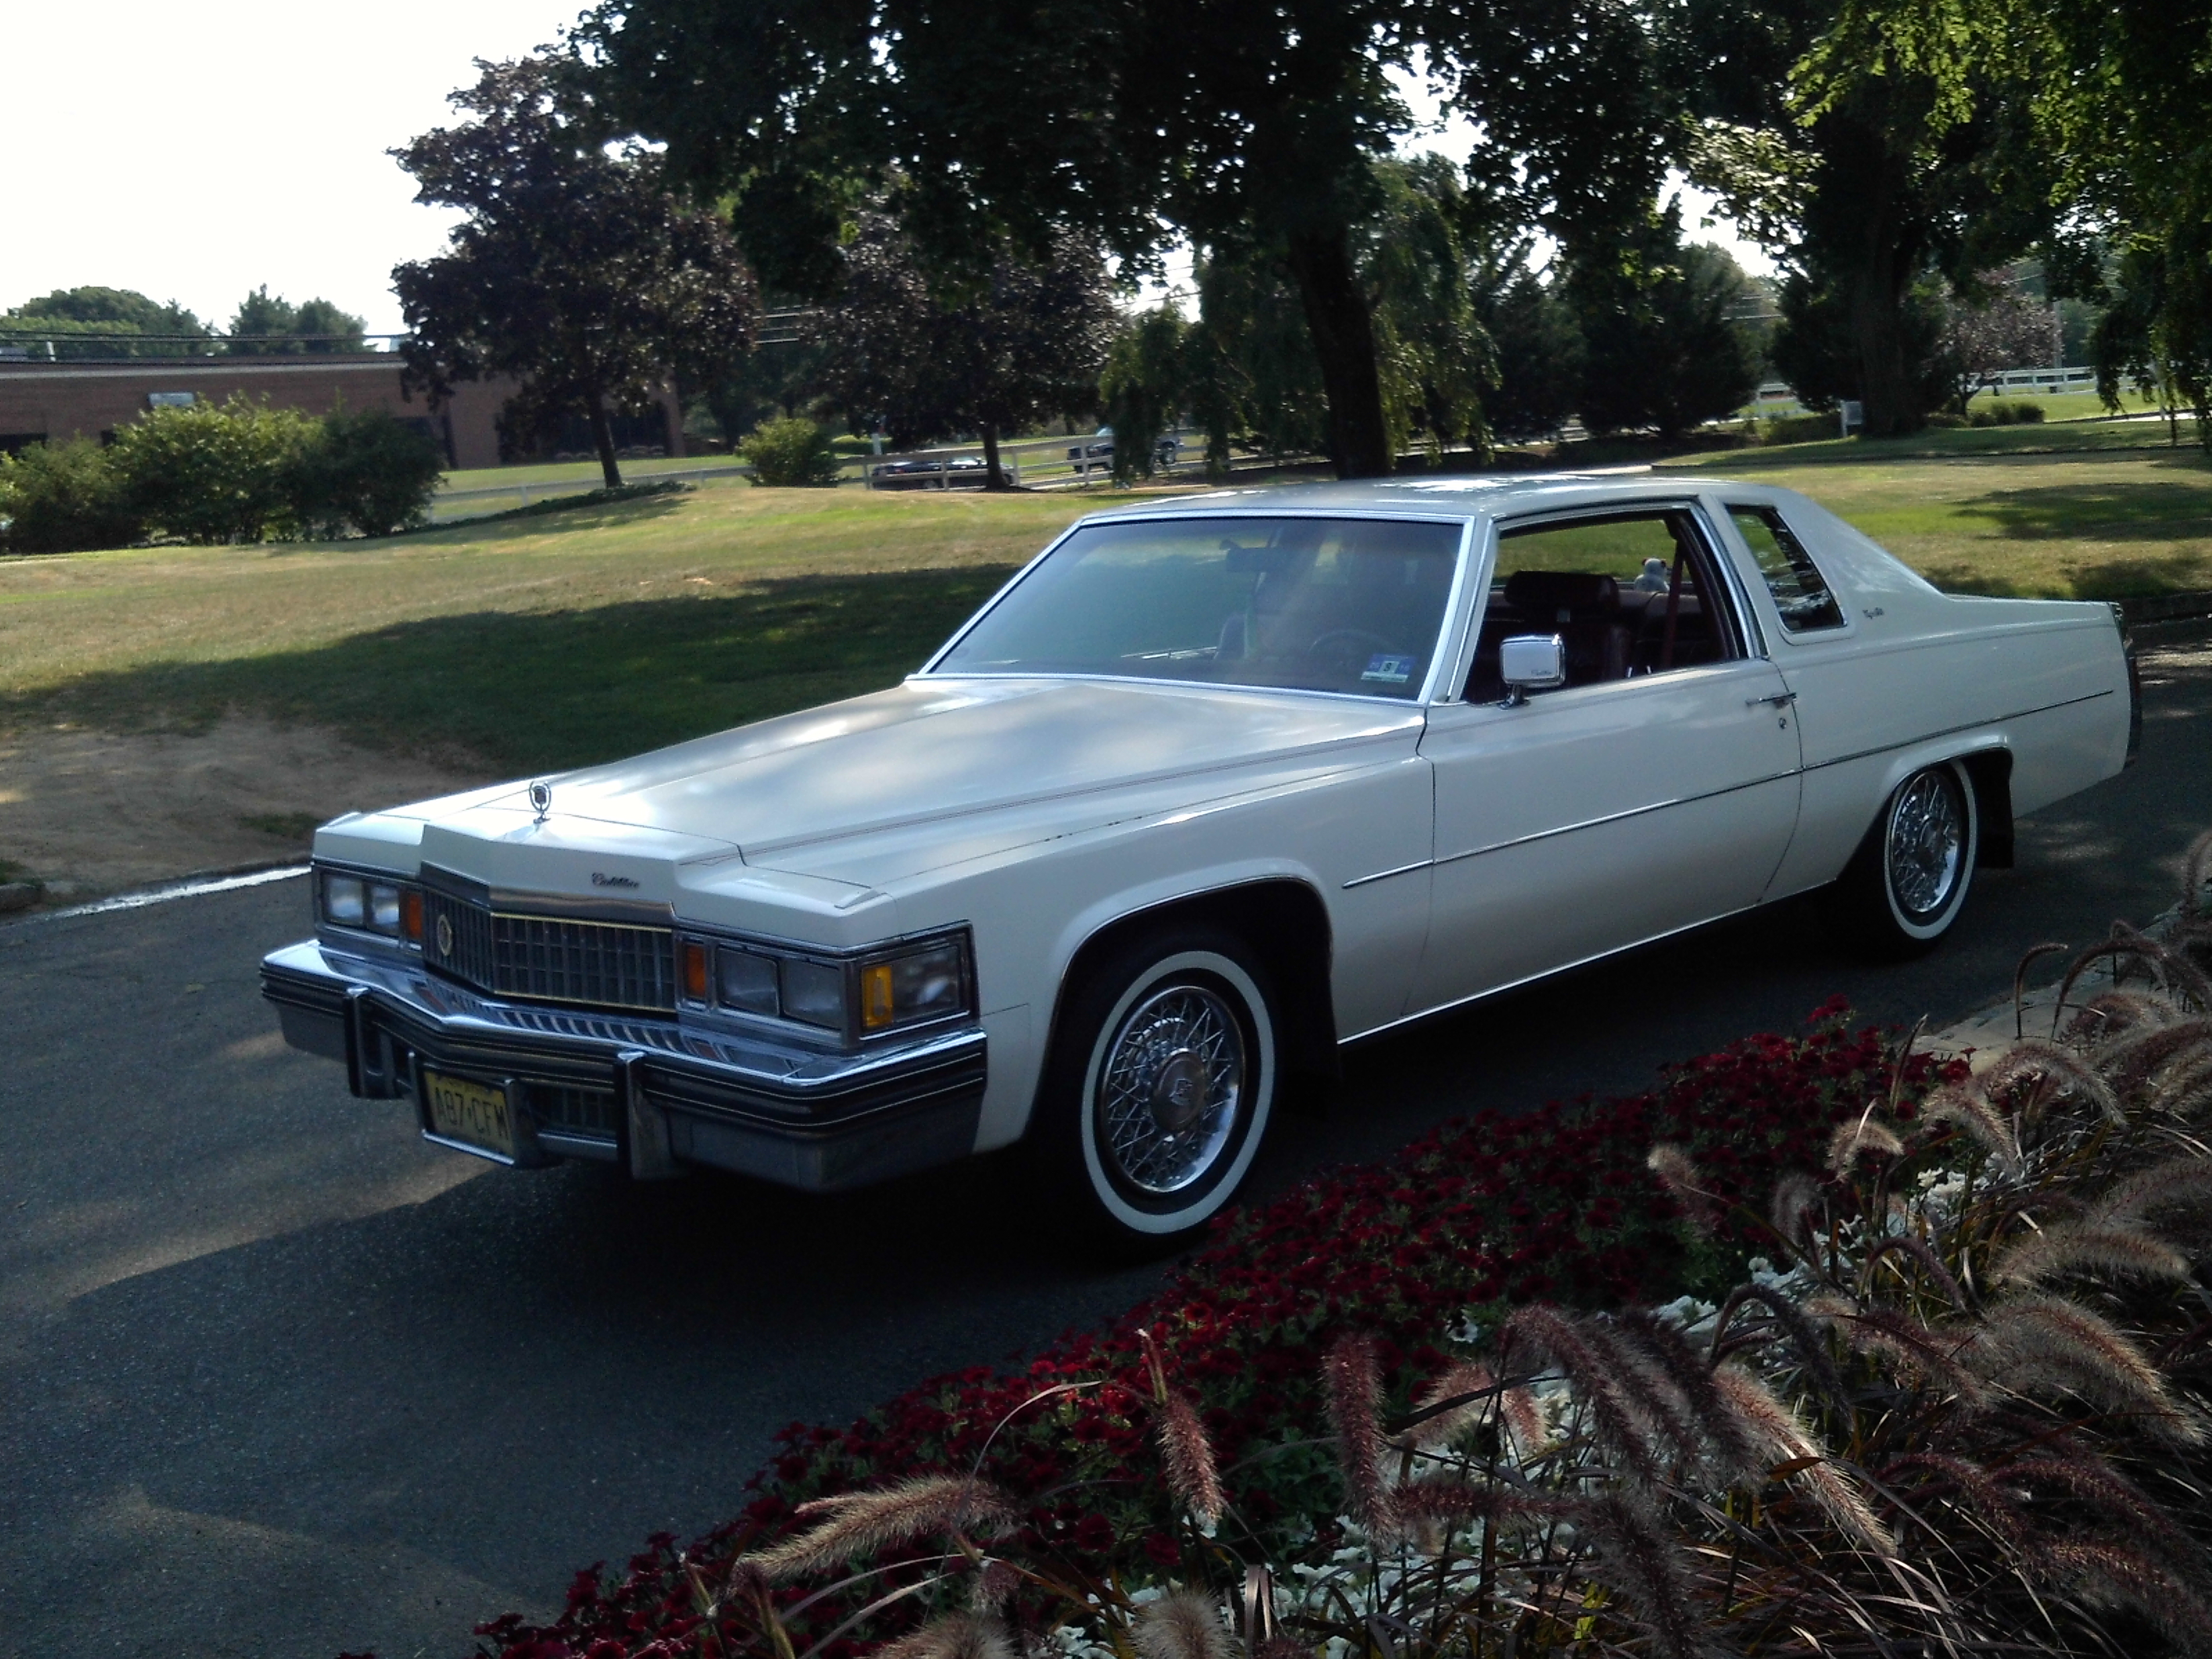 1978 Cadillac Coupe Deville Shadow Owner Rosemary Spicuzza Sedan Img 0455 0389 0406 0434 0429 0453